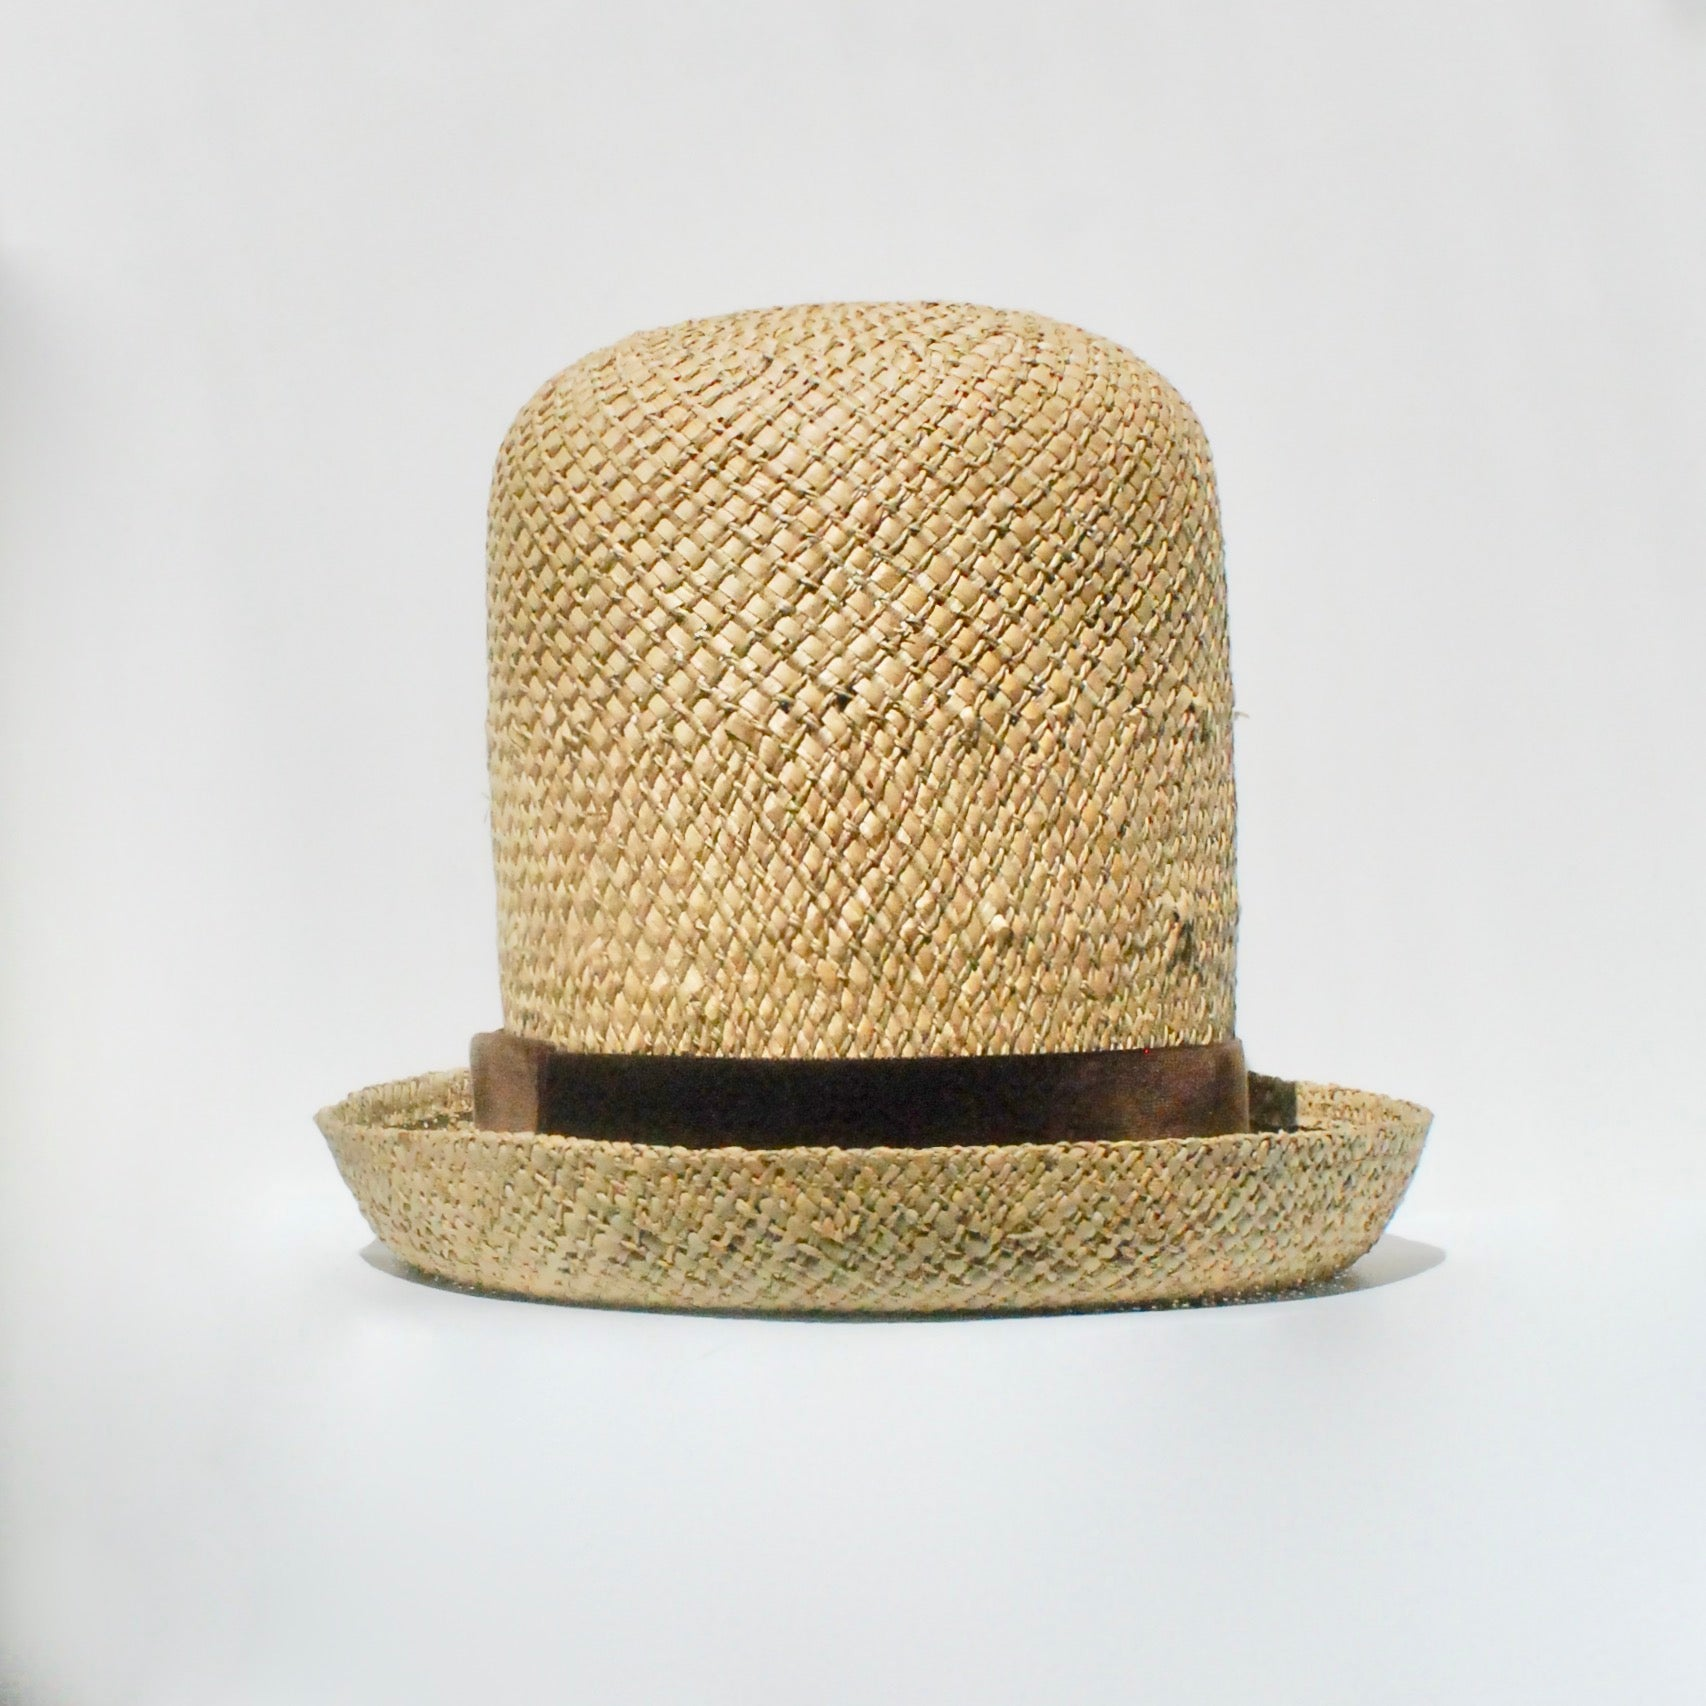 Yardie Crown (Straw with Brown Velvet)